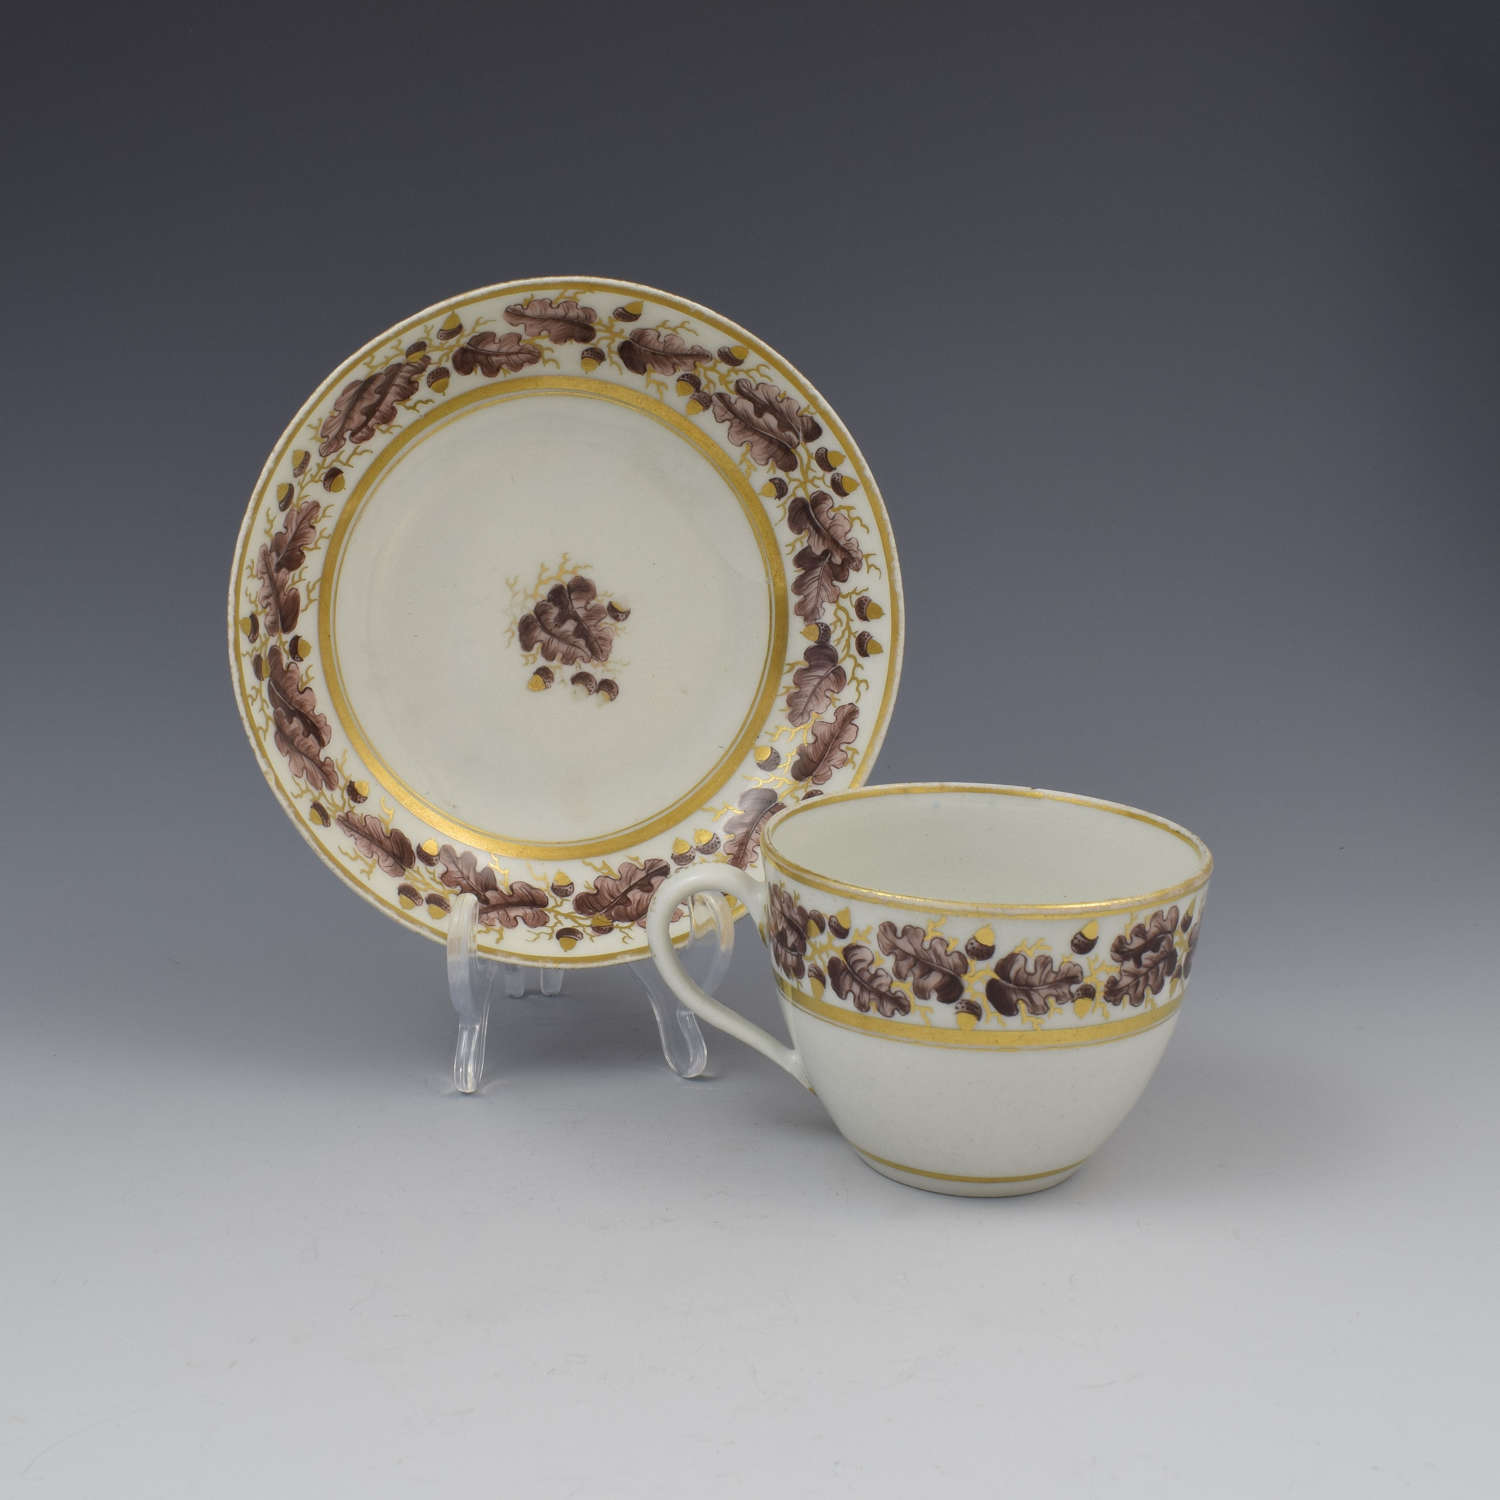 New Hall Porcelain Bute Cup & Saucer Pattern 302 Oak Leaves c.1800